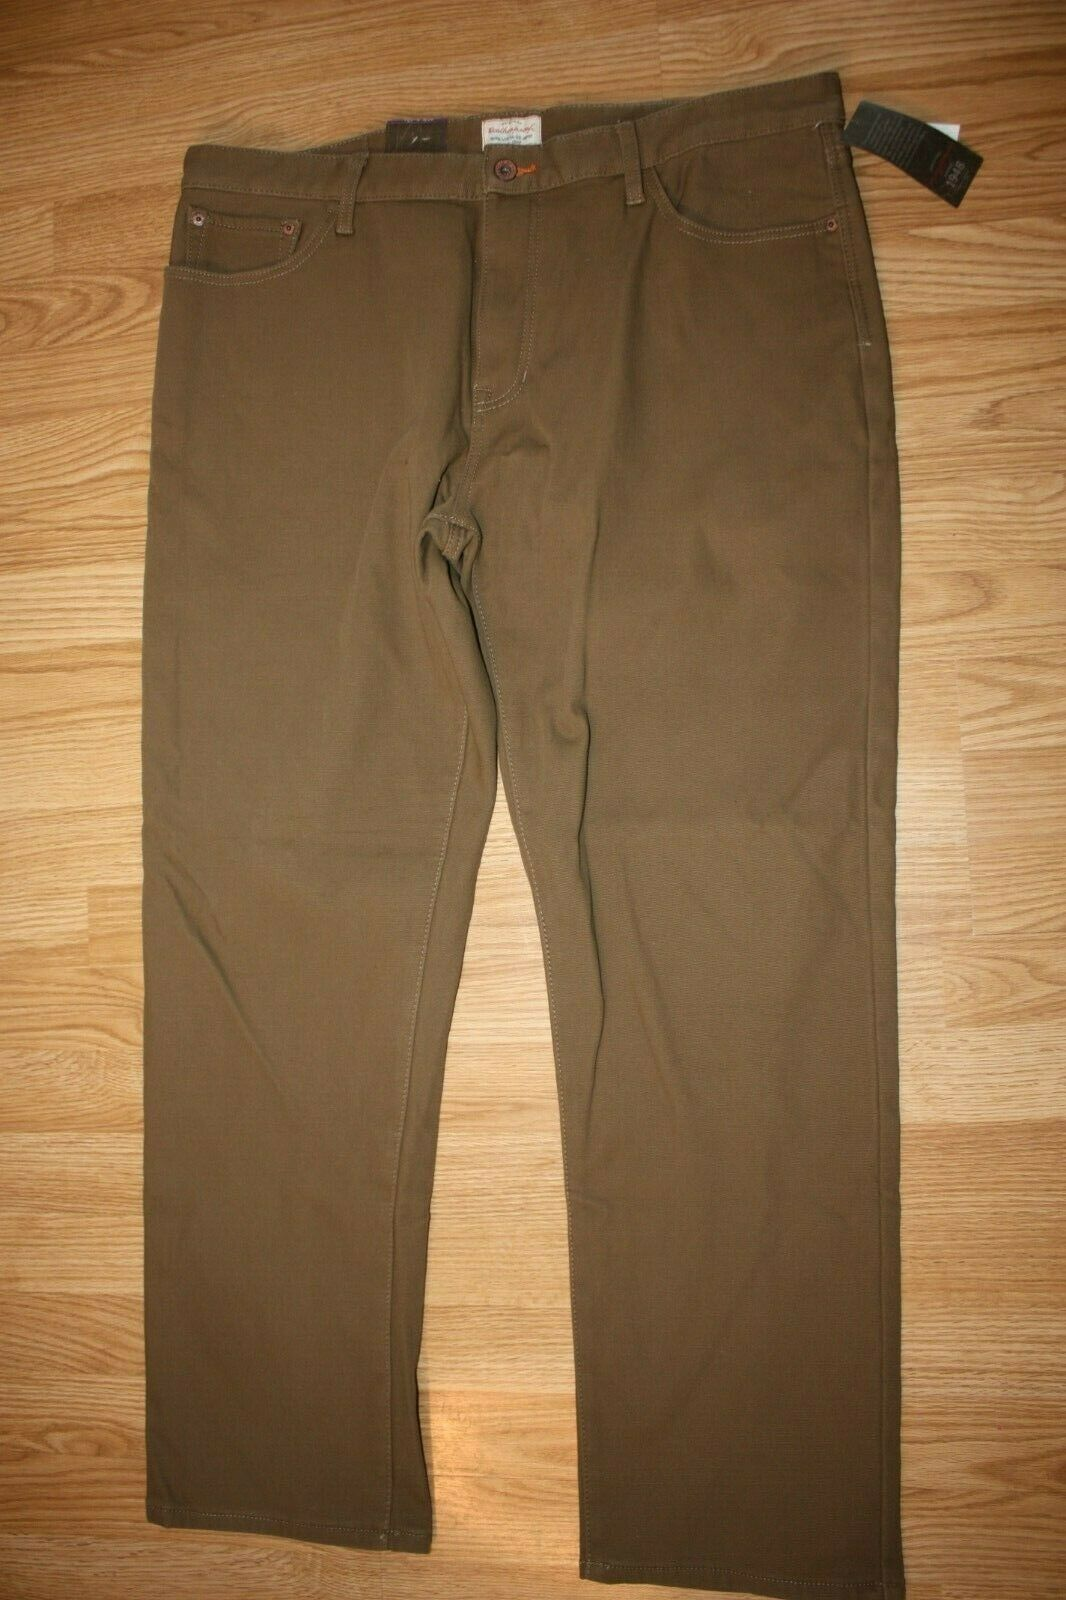 Weatherproof Mens Fleece Lined Jeans Brown Straight Leg Stretch Size 40x32 NWT